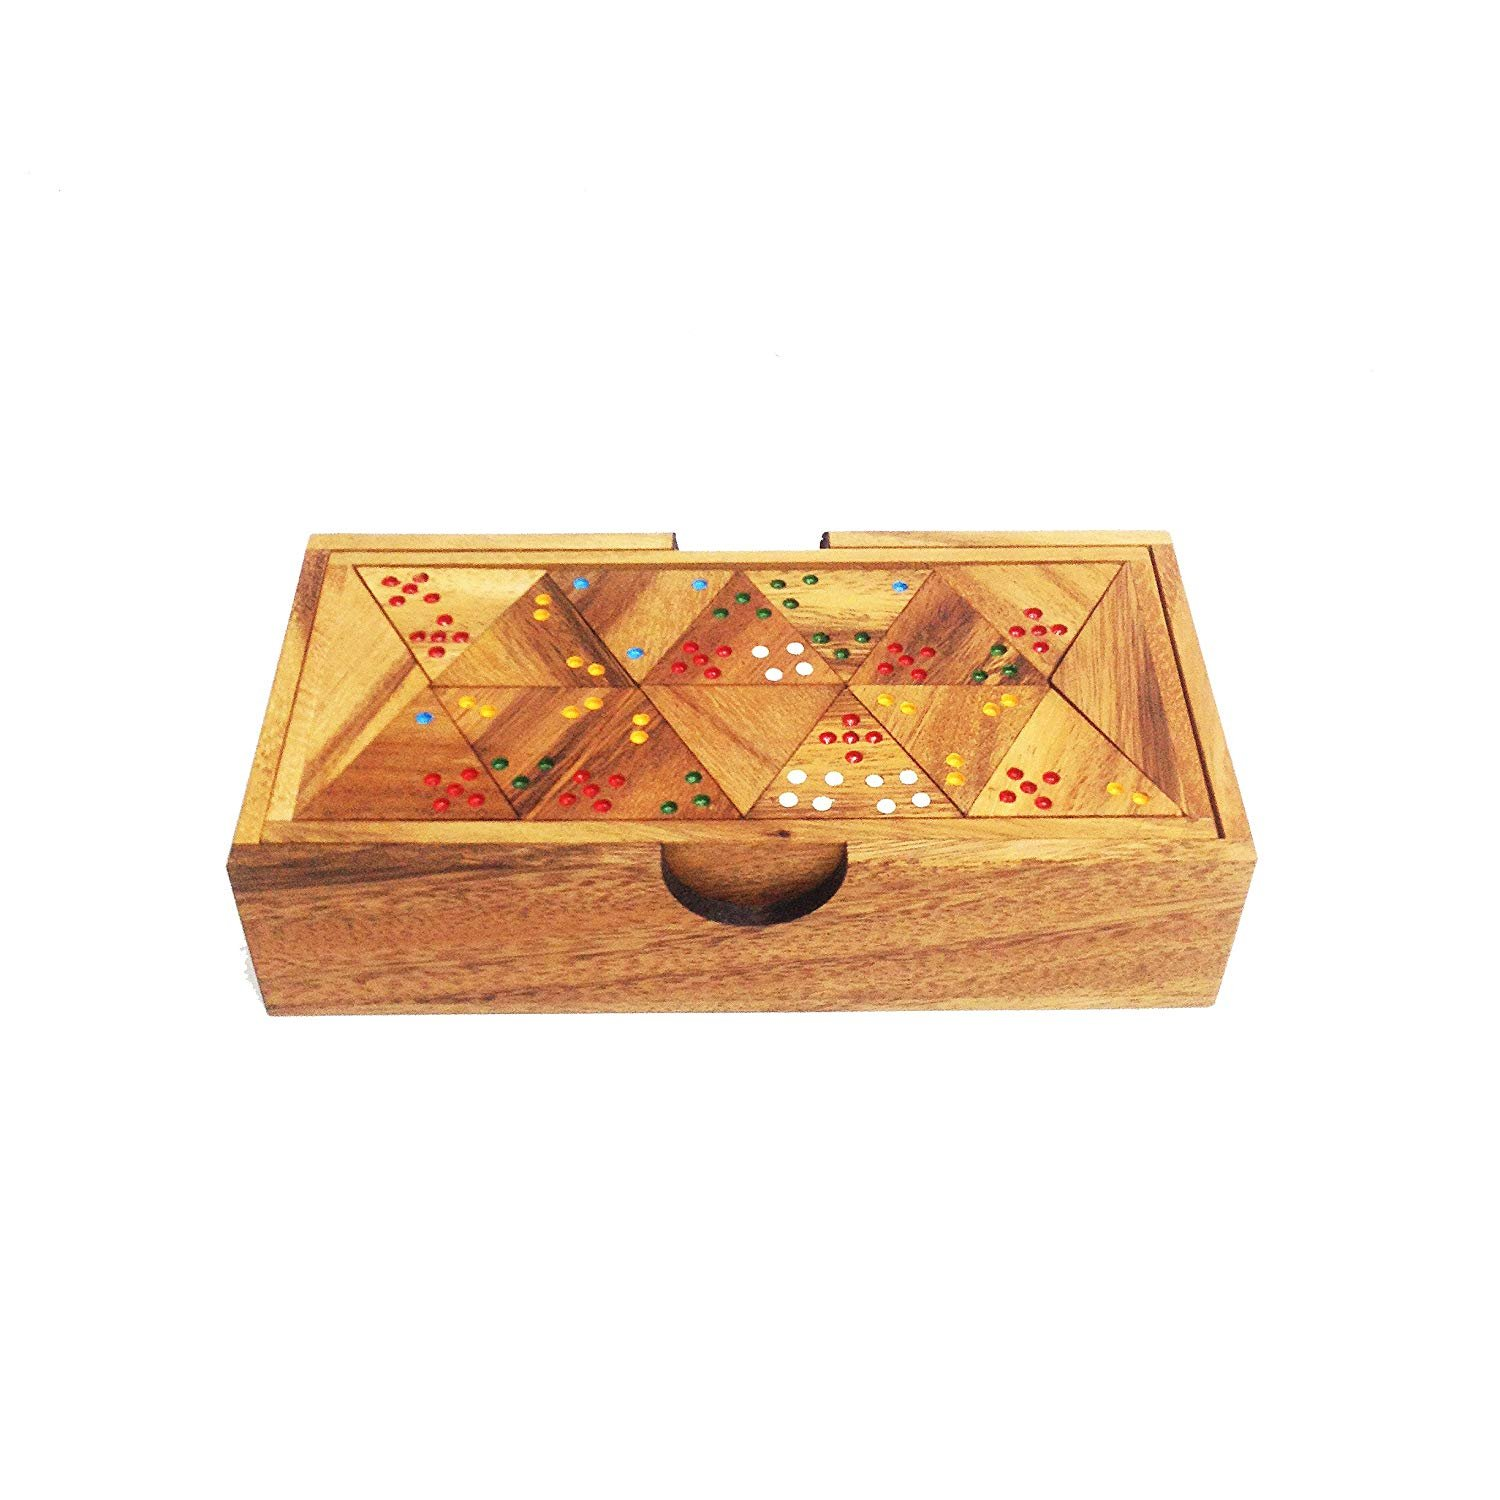 Wooden Triominos Game